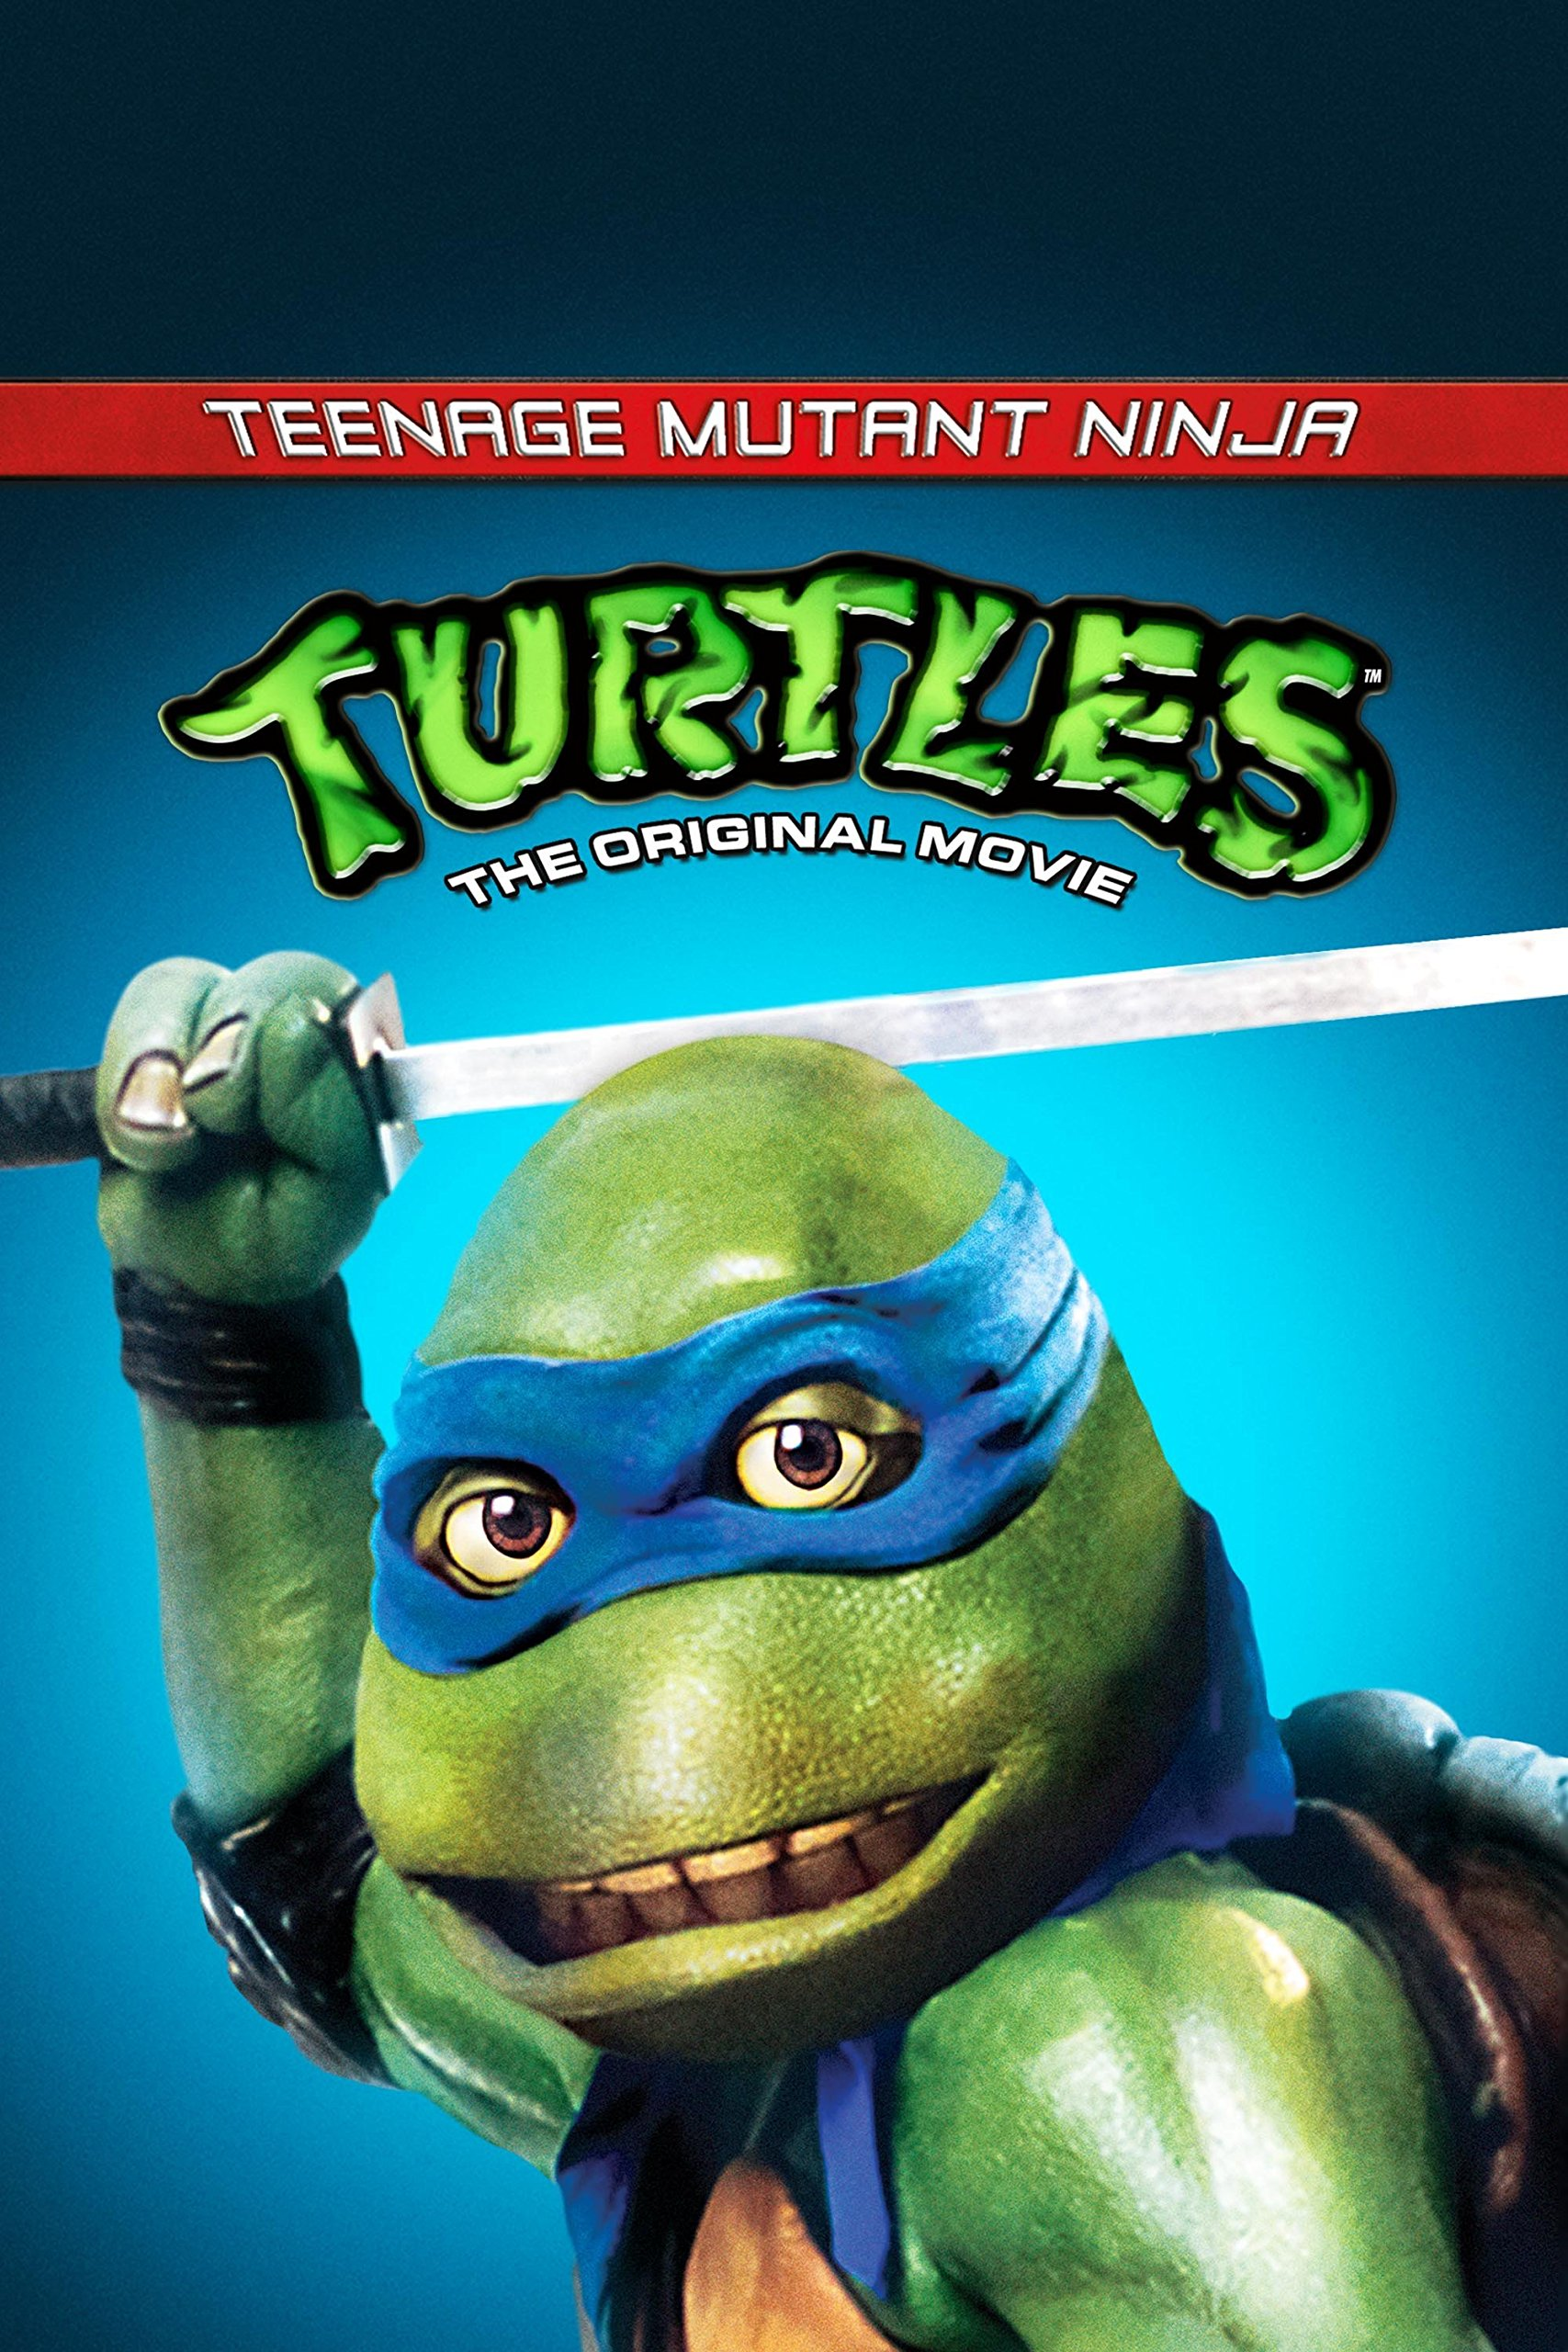 Amazoncom Watch Teenage Mutant Ninja Turtles Prime Video